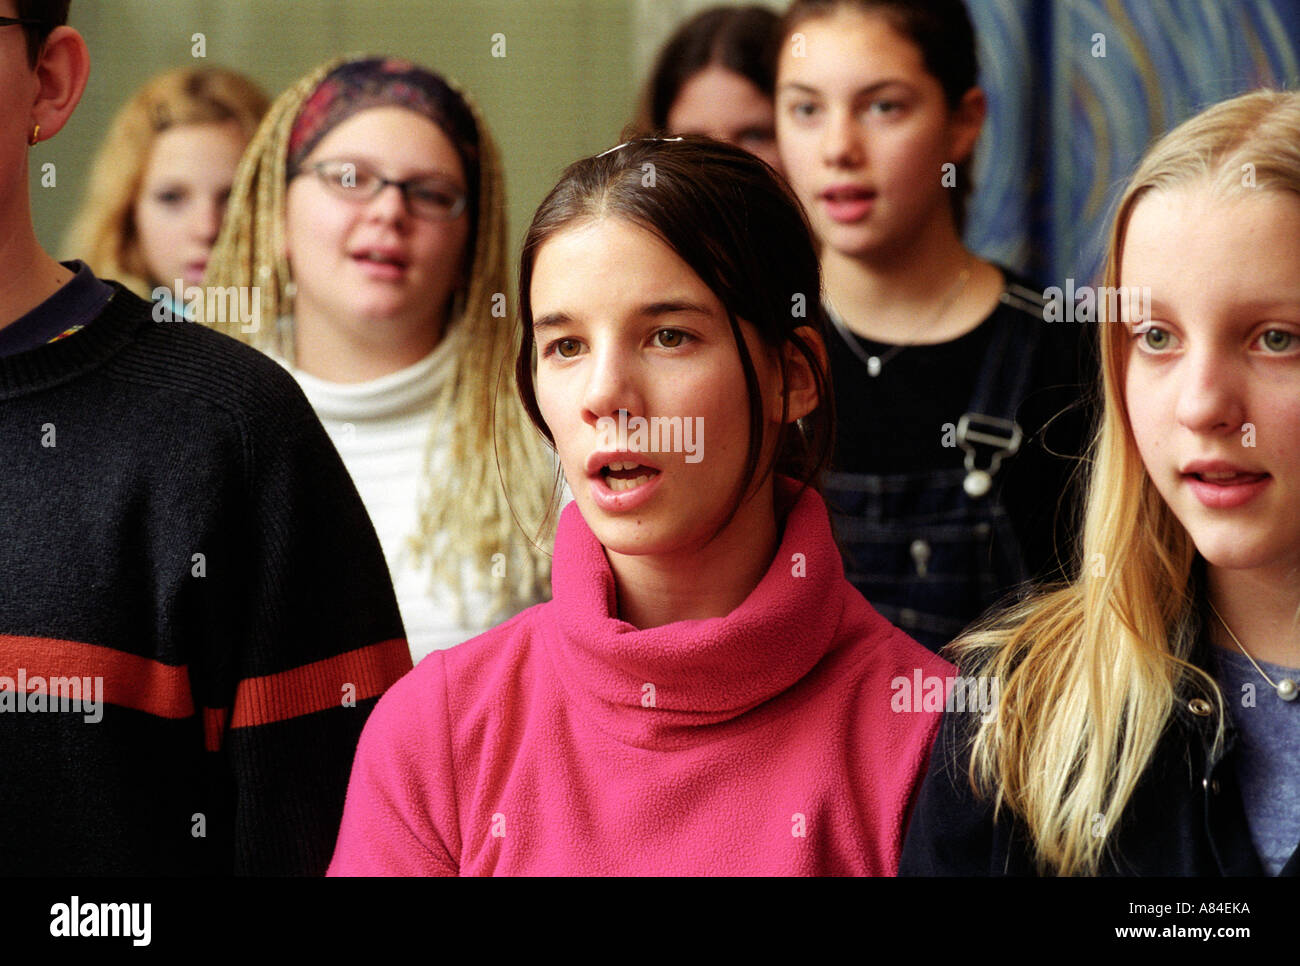 Sweden Örebro Choir practise during a lesson in music - Stock Image